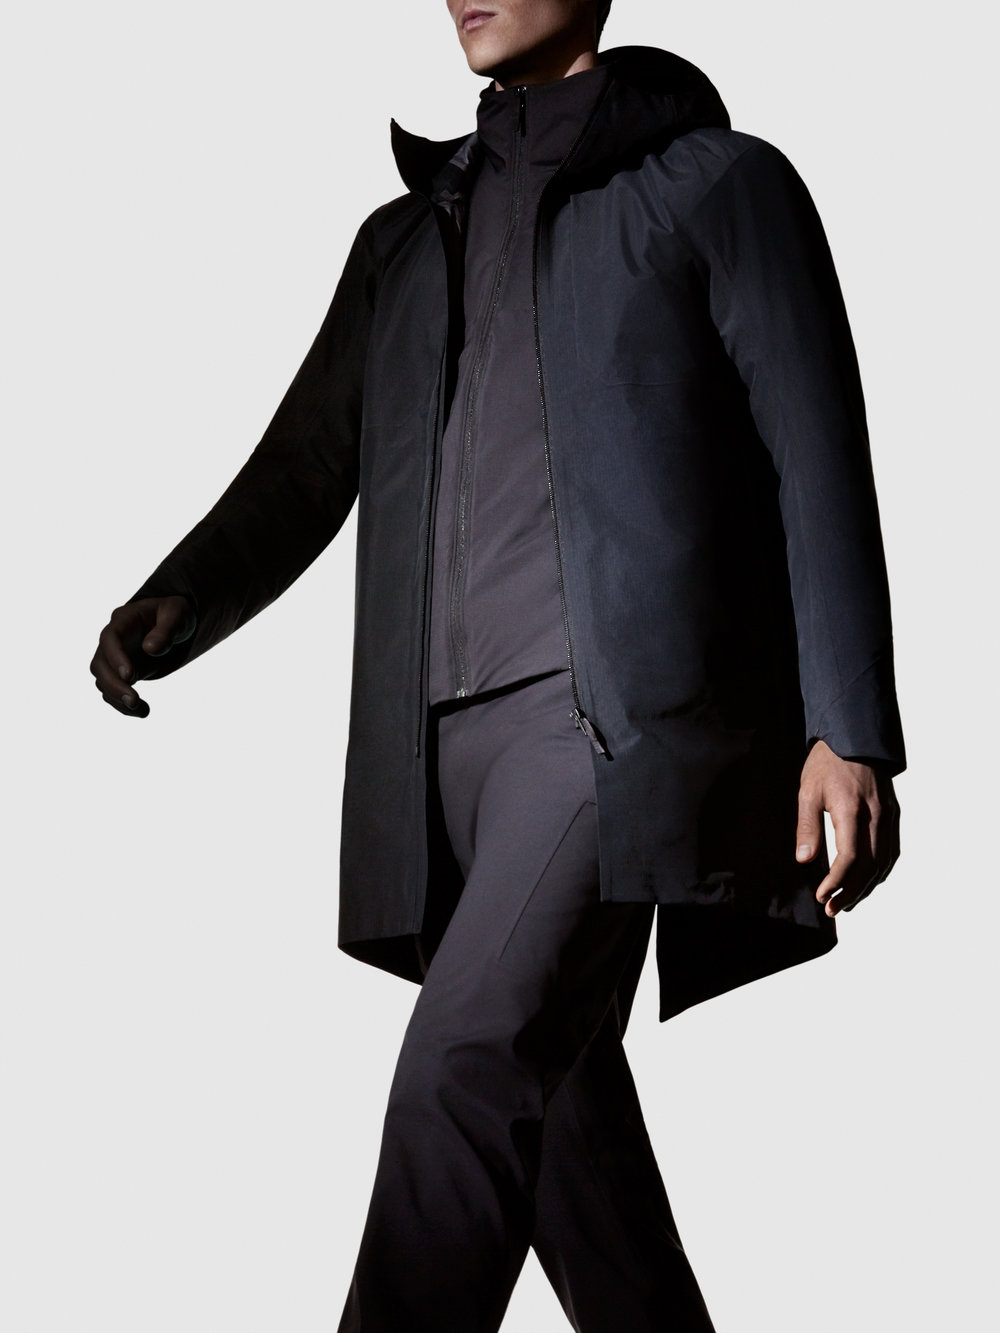 Arcteryx-Veilance-FW17-On-Model-Imagery-Monitor-Coat-01-Portrait-RGB.jpg